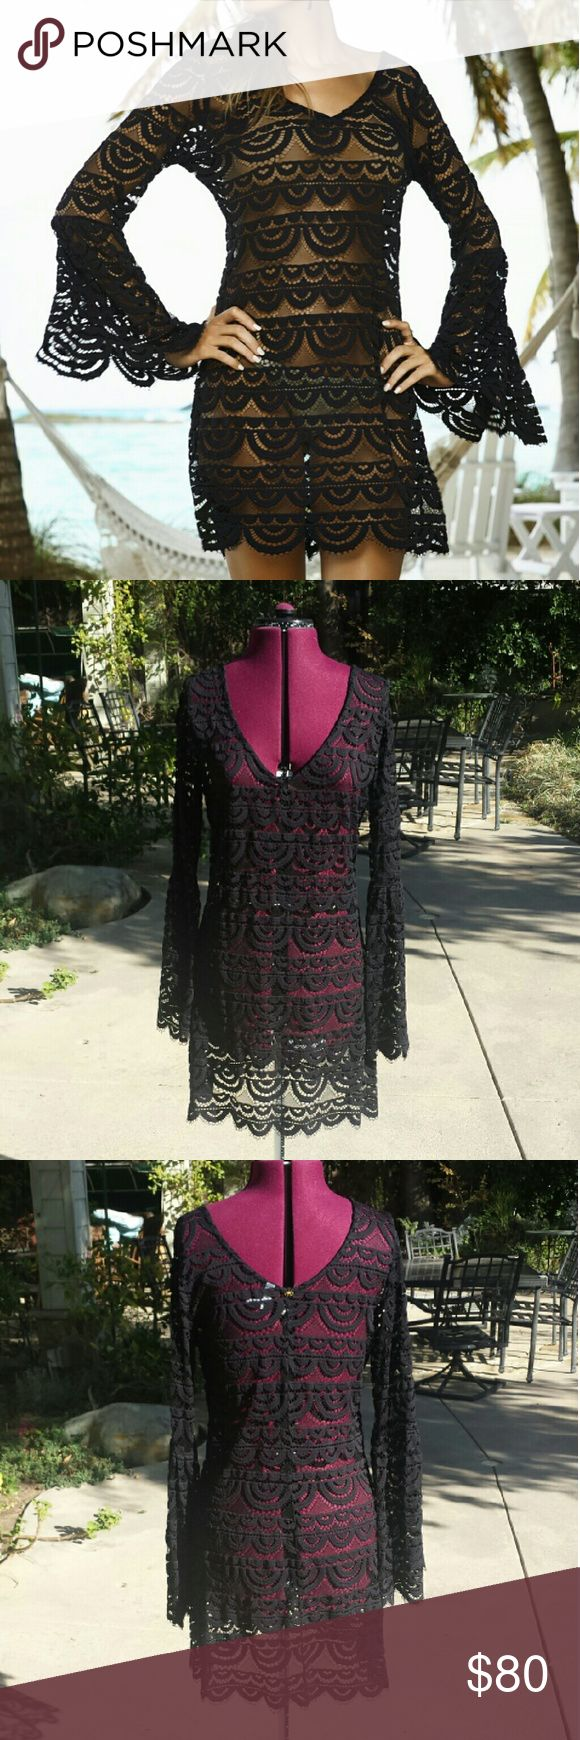 PILYQ Lace Dress Black lace with scallop hem and bell sleeve. This is sheer, can be worn over a swimsuit or a slip. Size M/L. Great condition, never worn, just tried on. Pilyq Dresses Long Sleeve